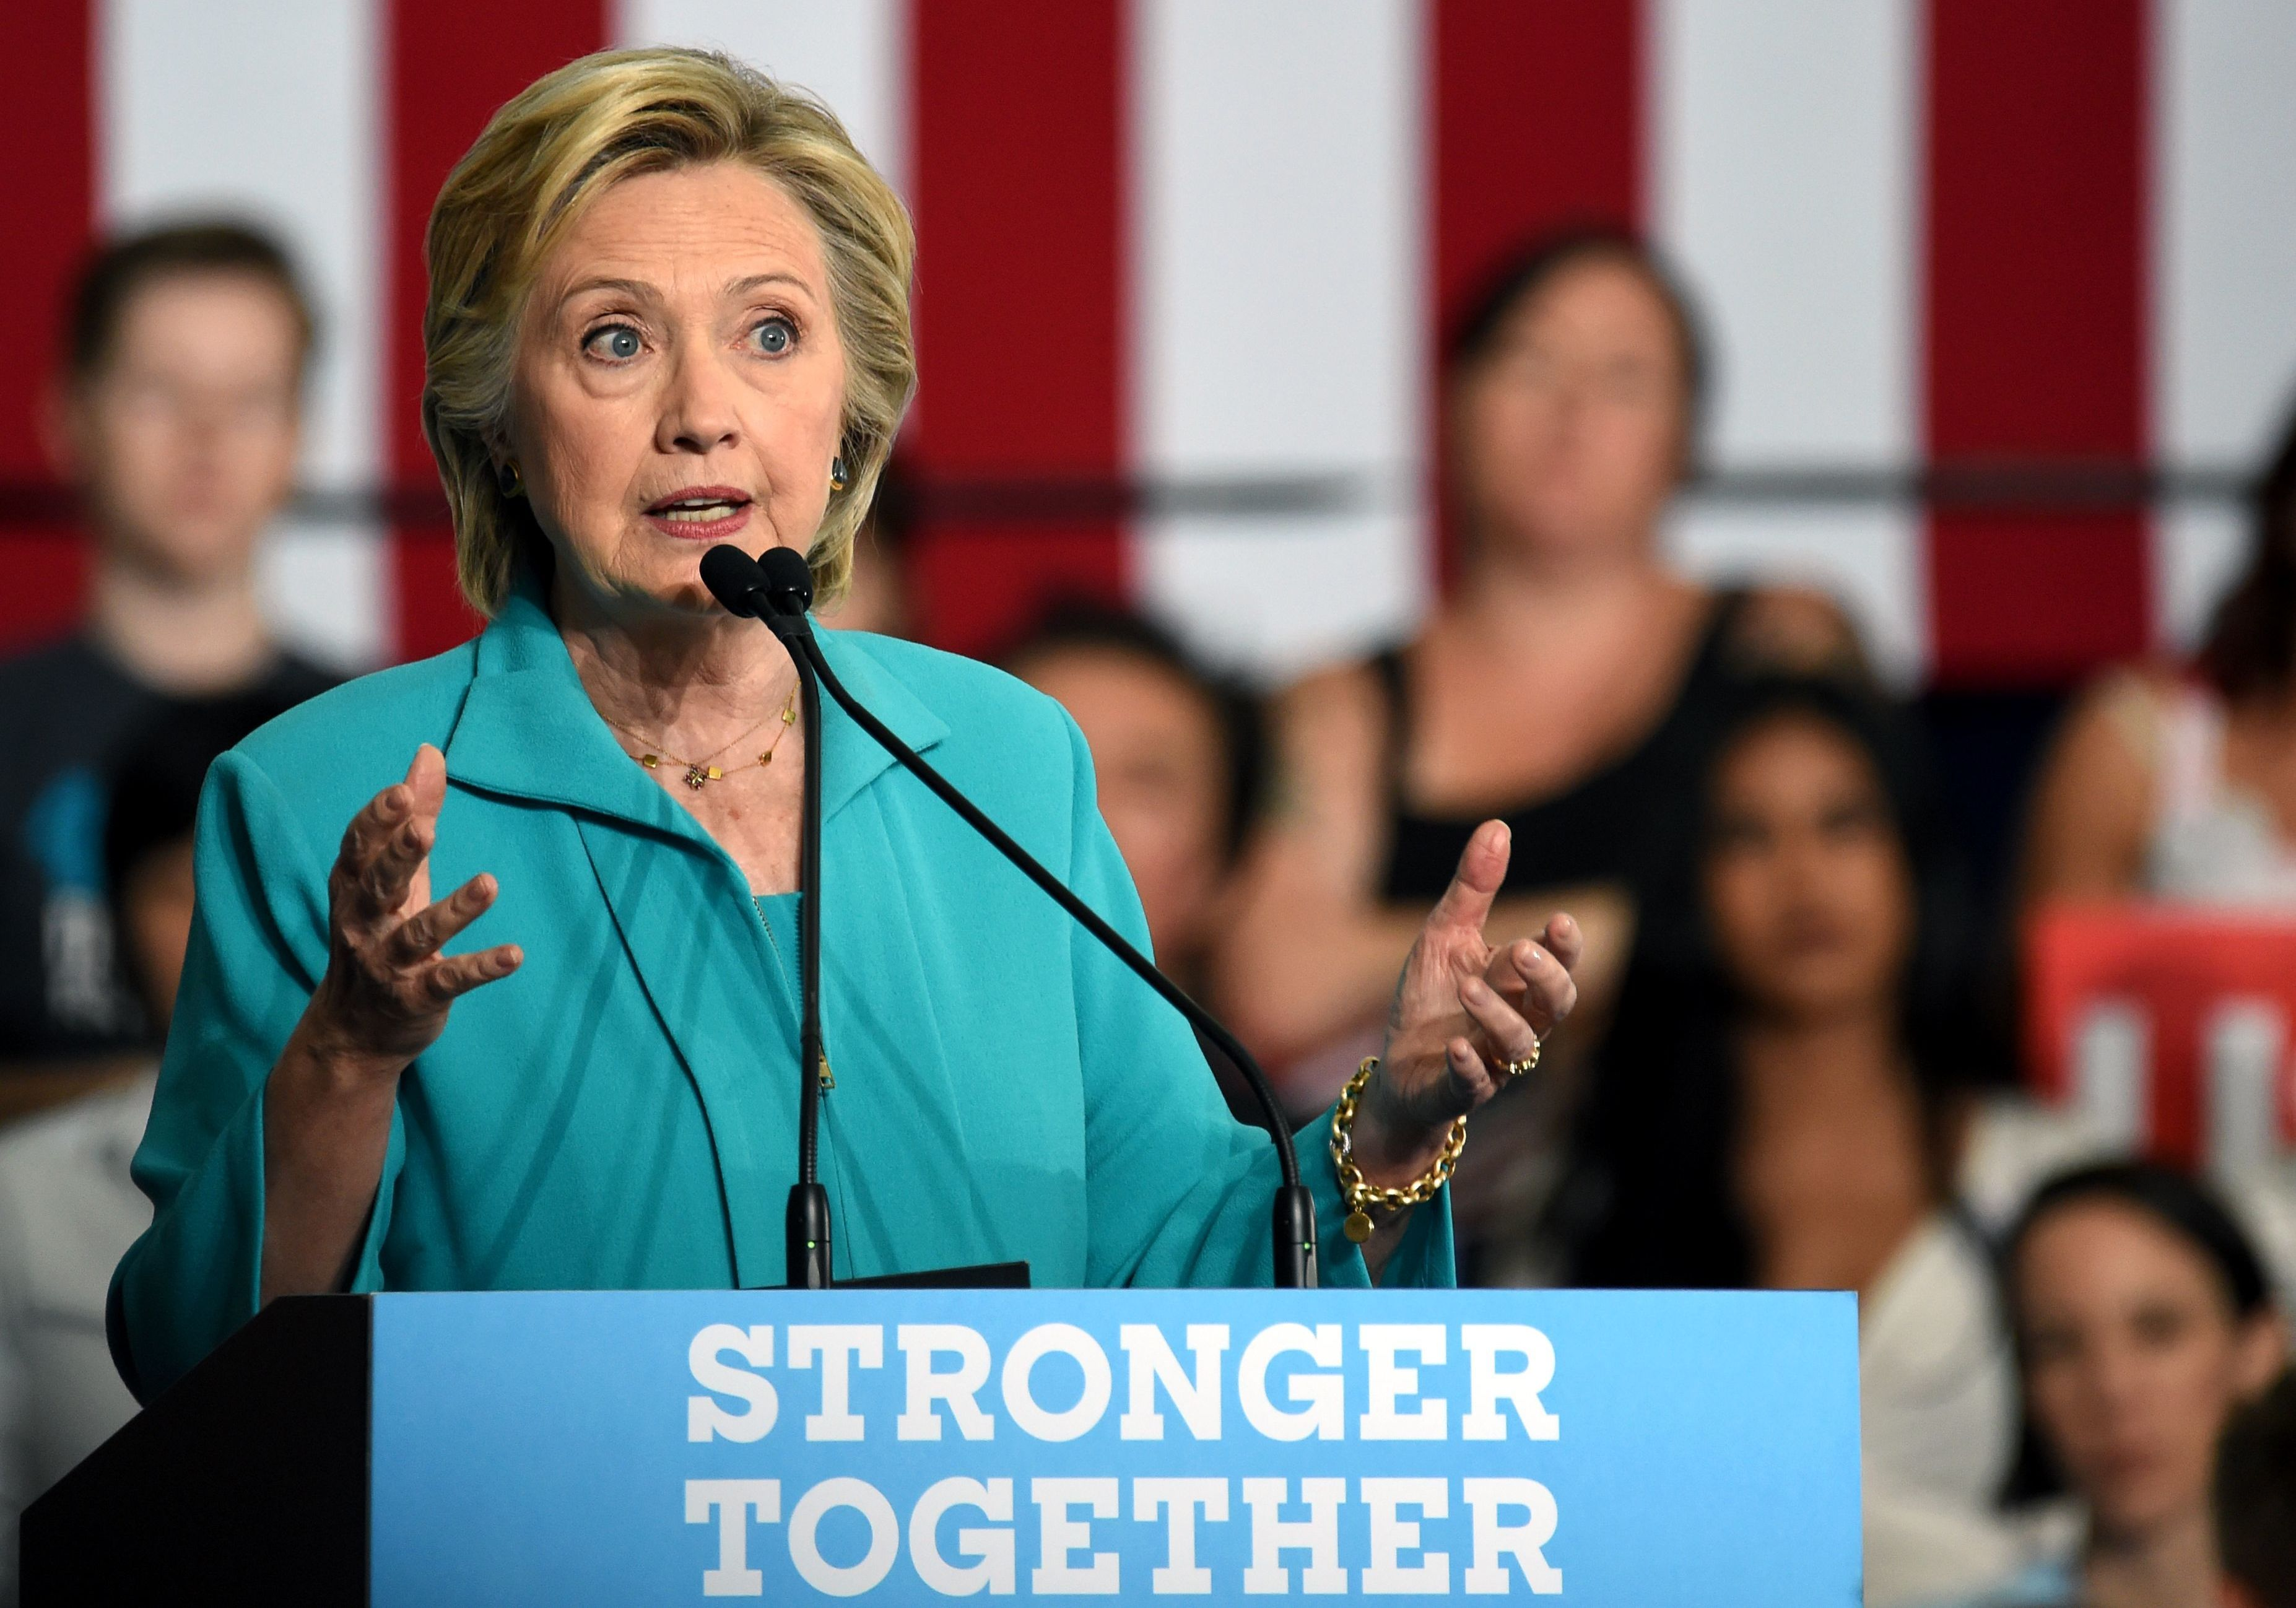 In a speech in Reno, Nev., on Thursday, Hillary Clinton drew connections between rival Donald Trump and hate groups. (Photo by Josh Edelson/AFP/Getty Images)